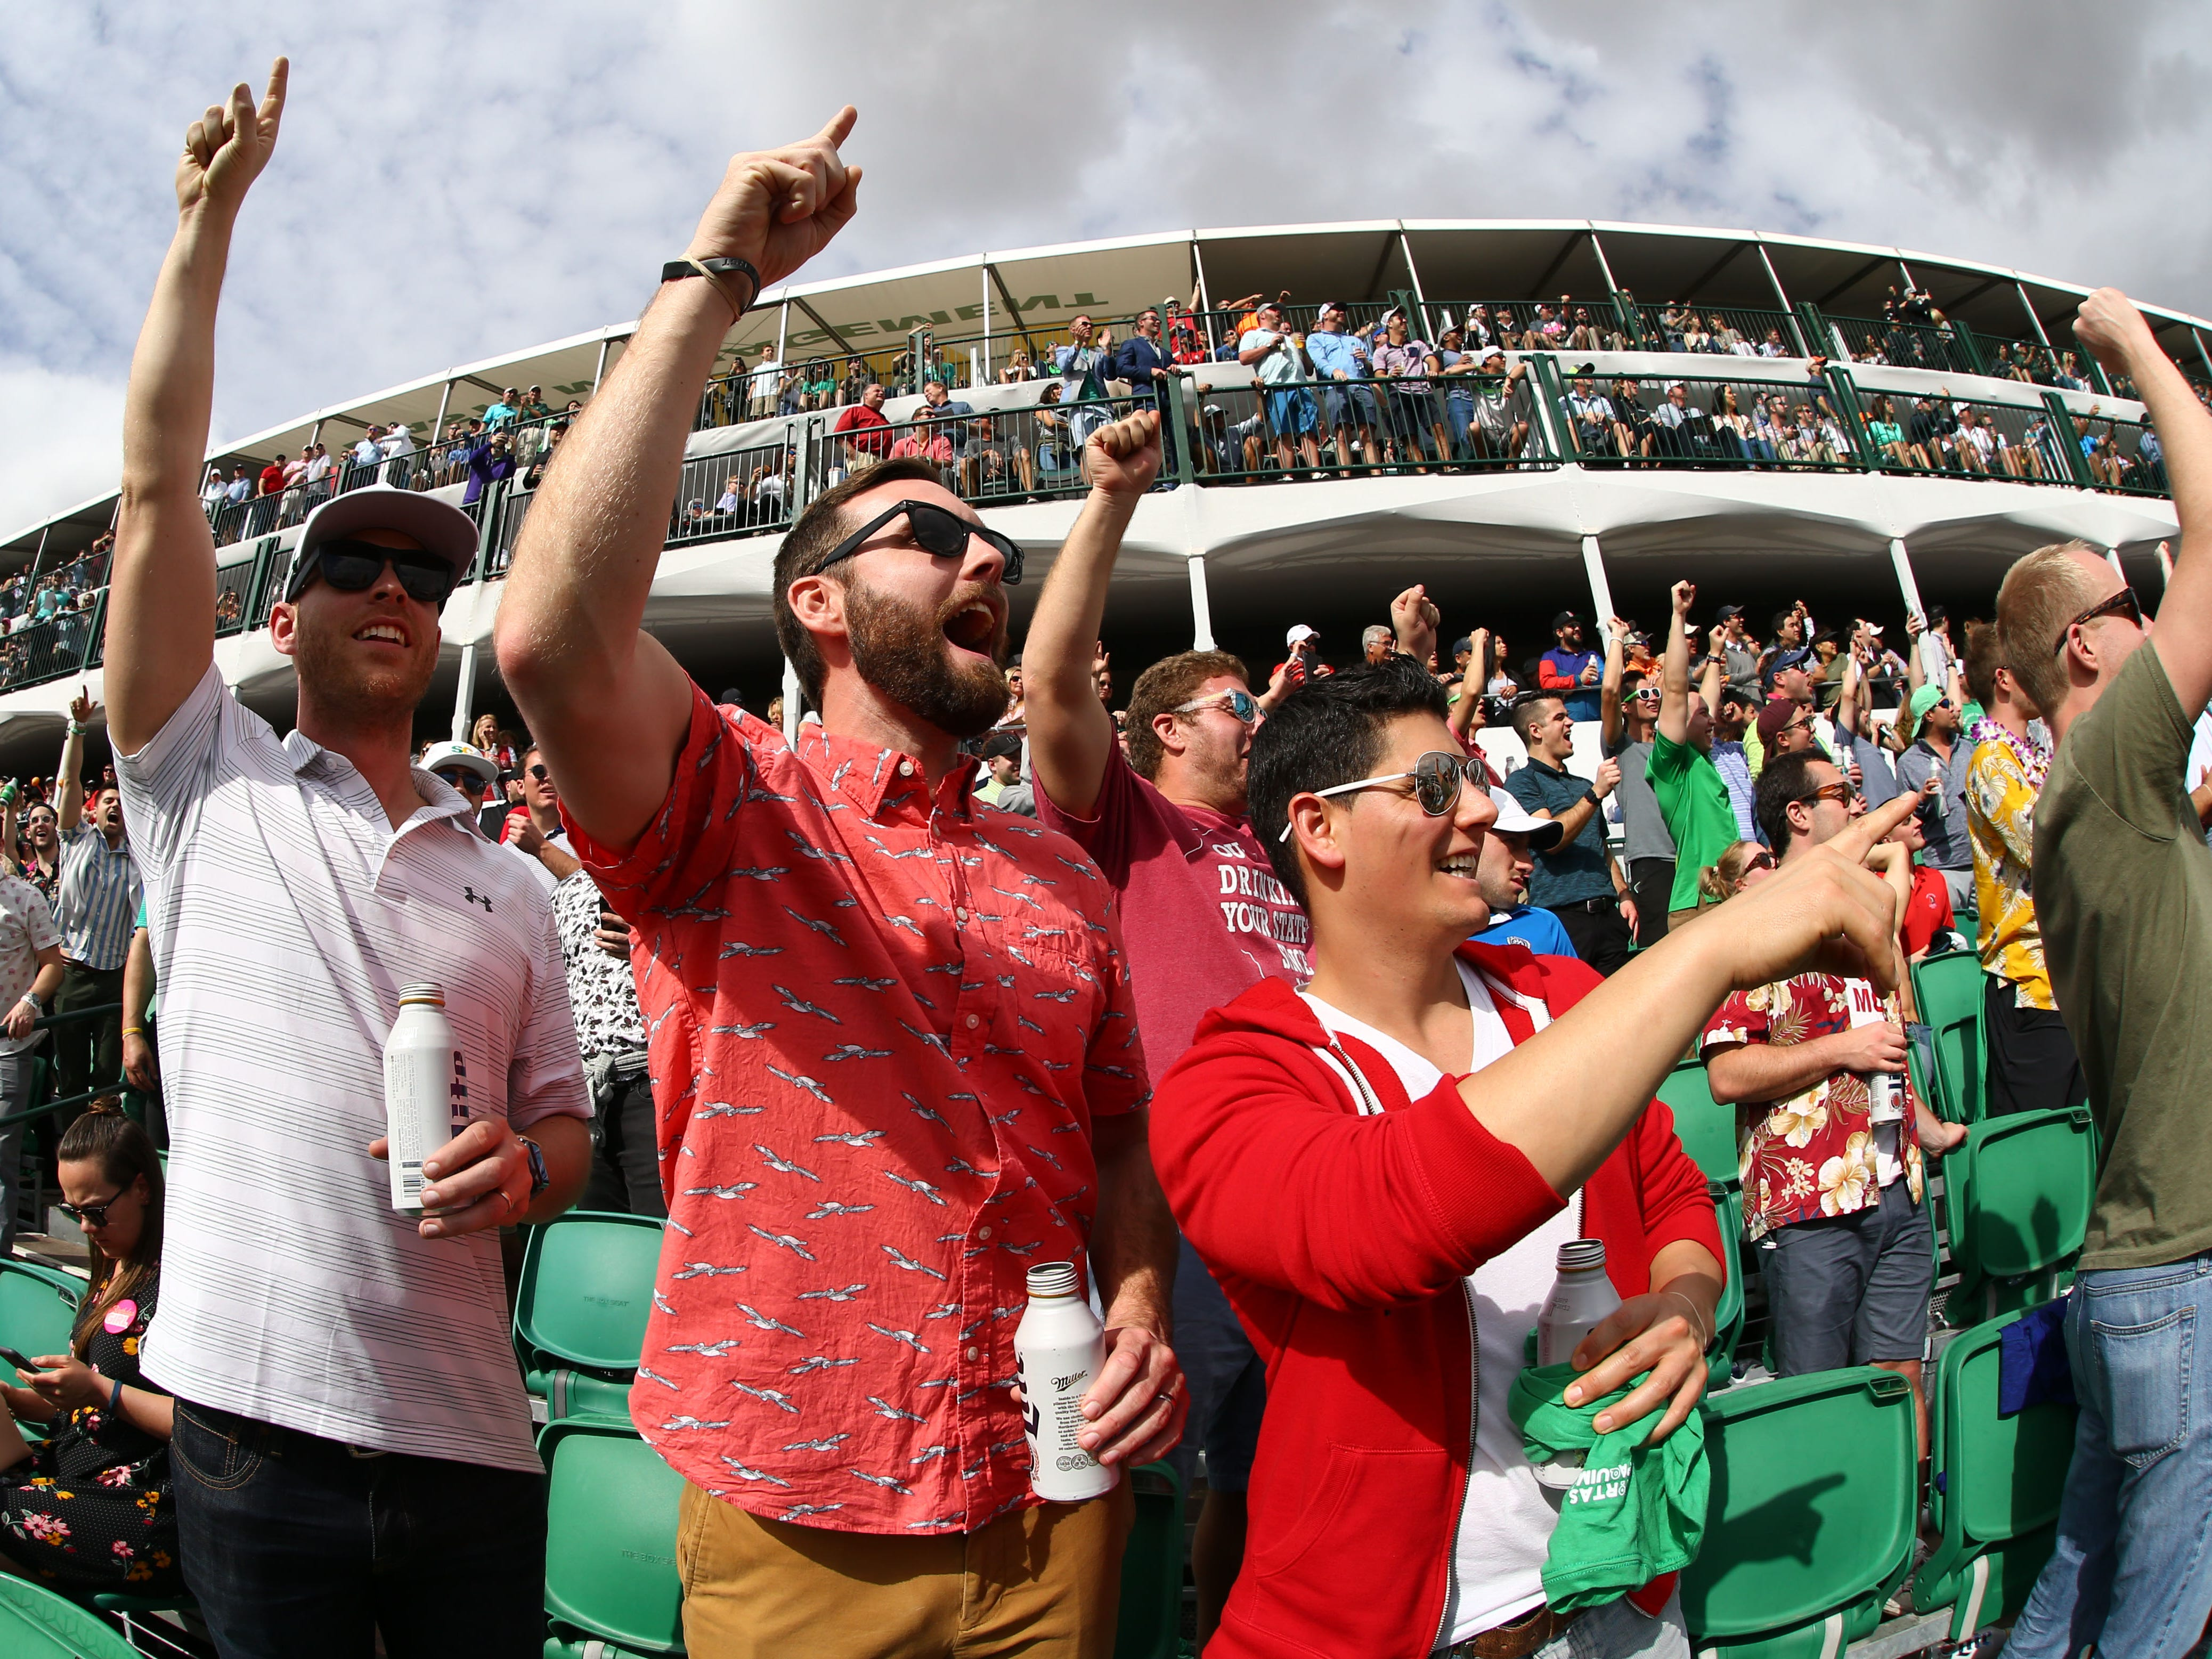 Fans cheer on the 16th hole during third round action on Feb. 2 during the Waste Management Phoenix Open at the TPC Scottsdale Stadium Course.